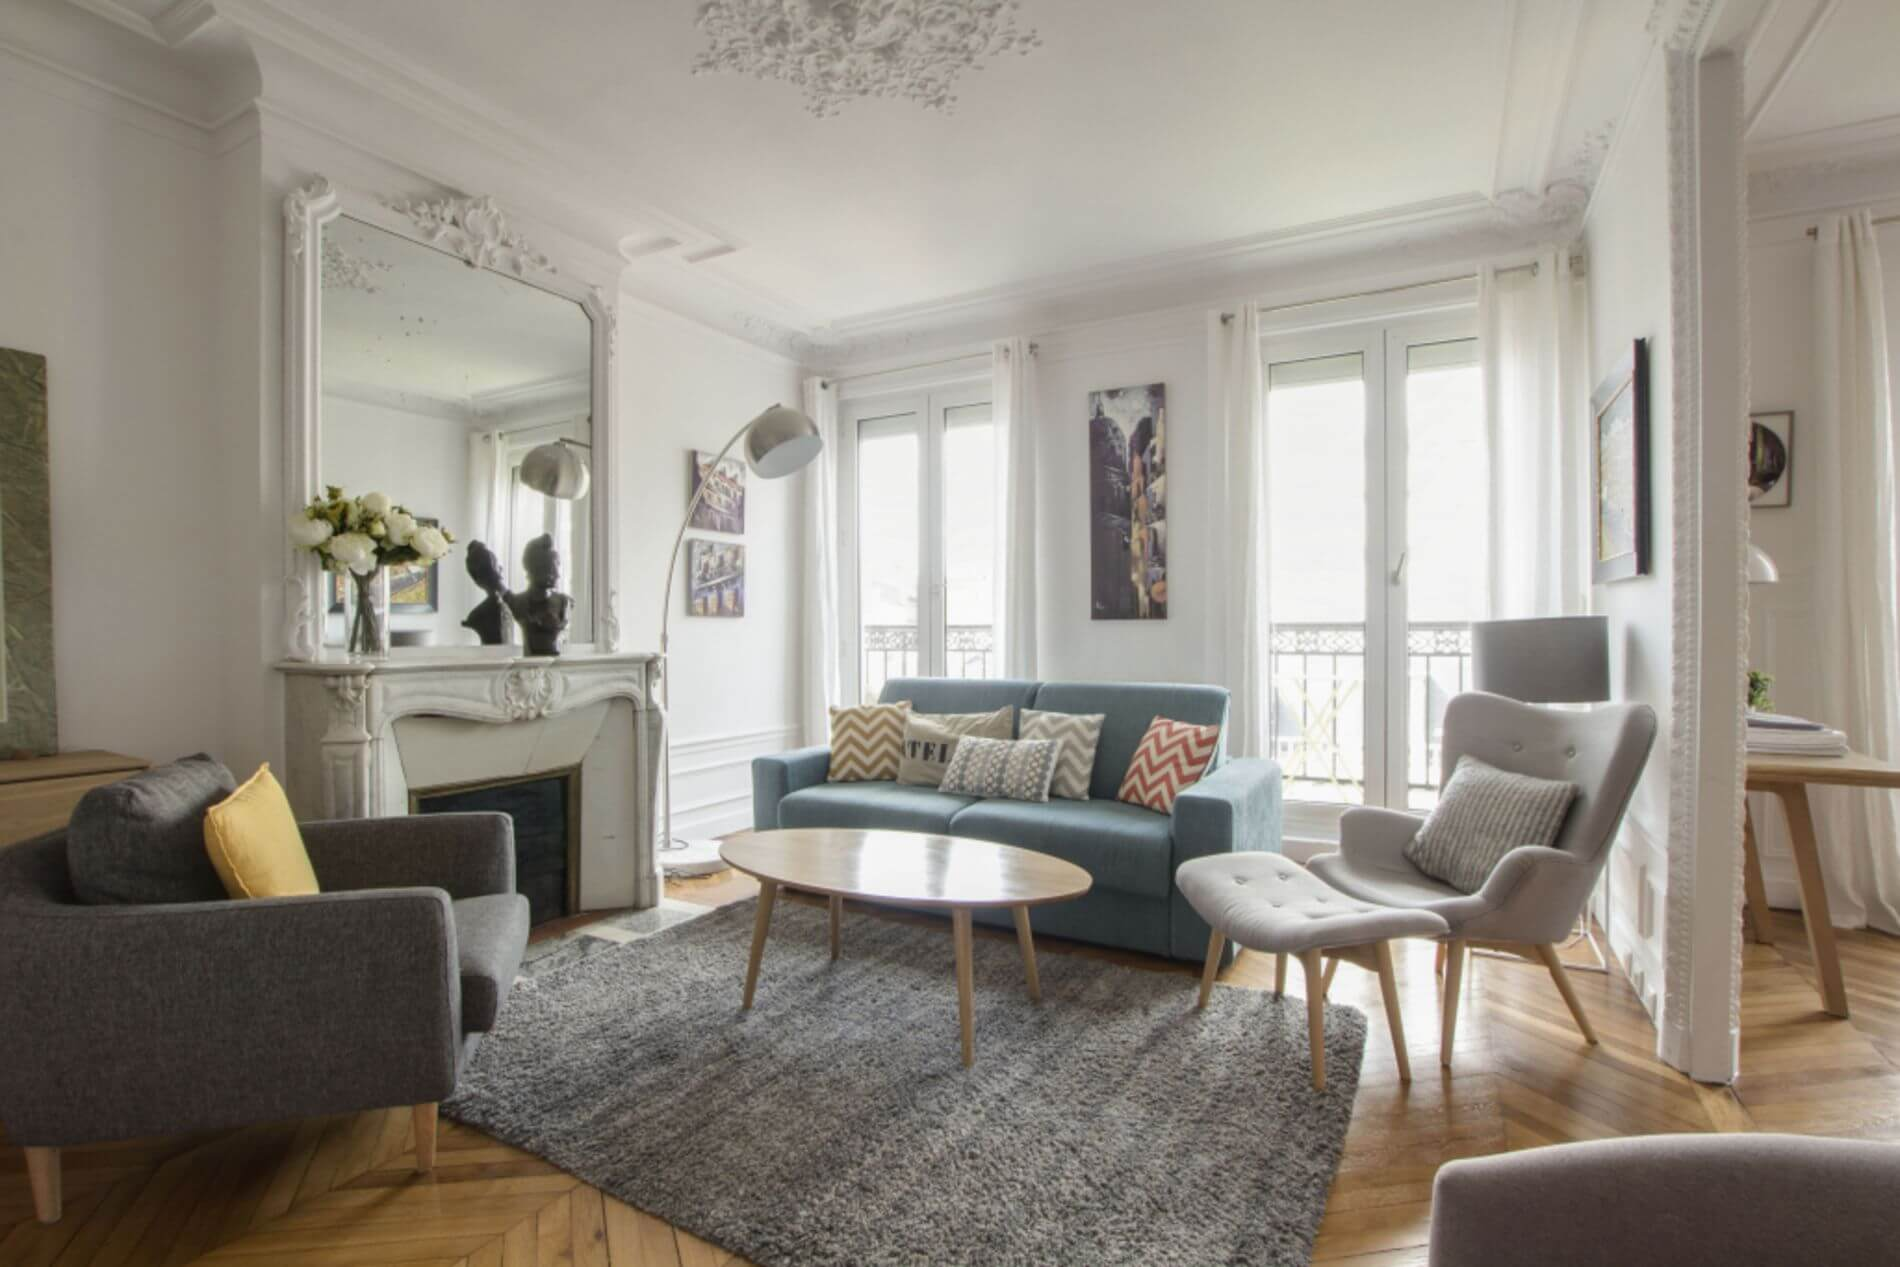 Furnished 2 bed flat in Cambacérès, Paris